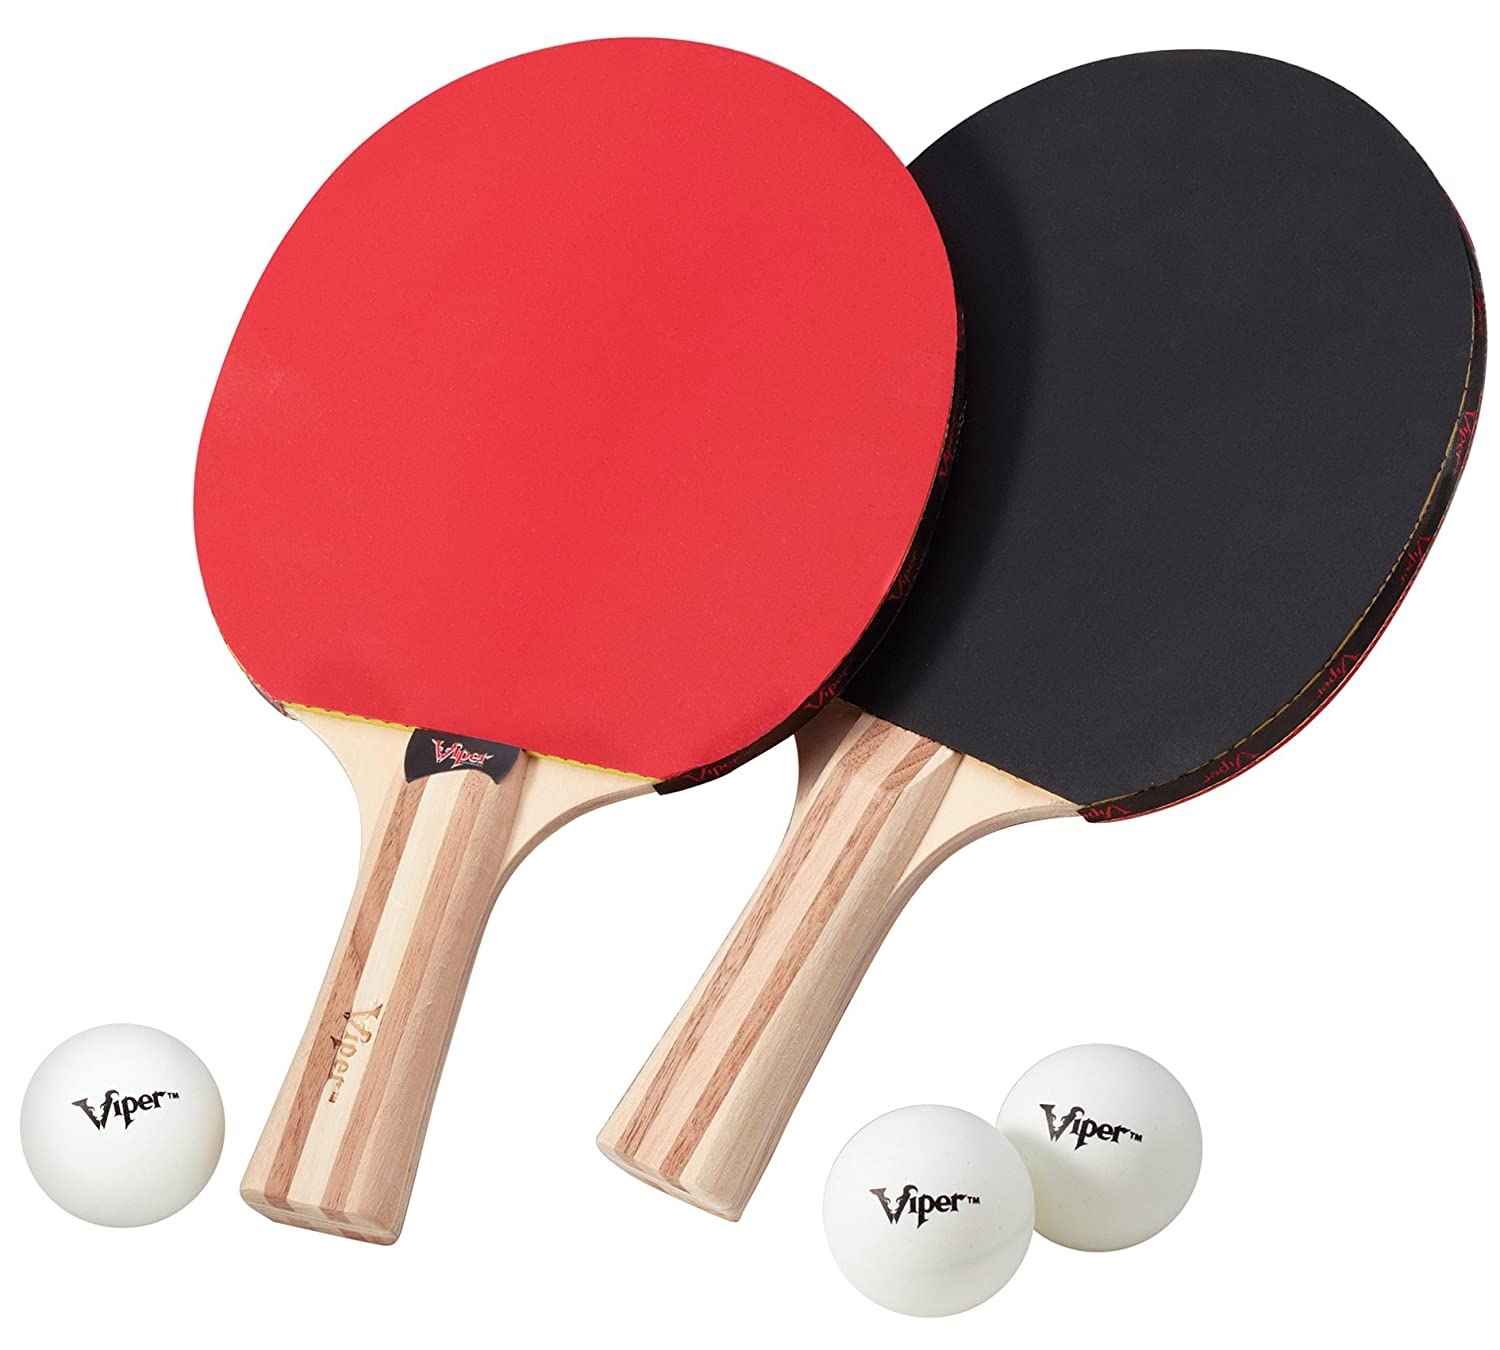 Amazon.com : Viper Table Tennis Accessory Set, 2 Rackets/Paddles and ...